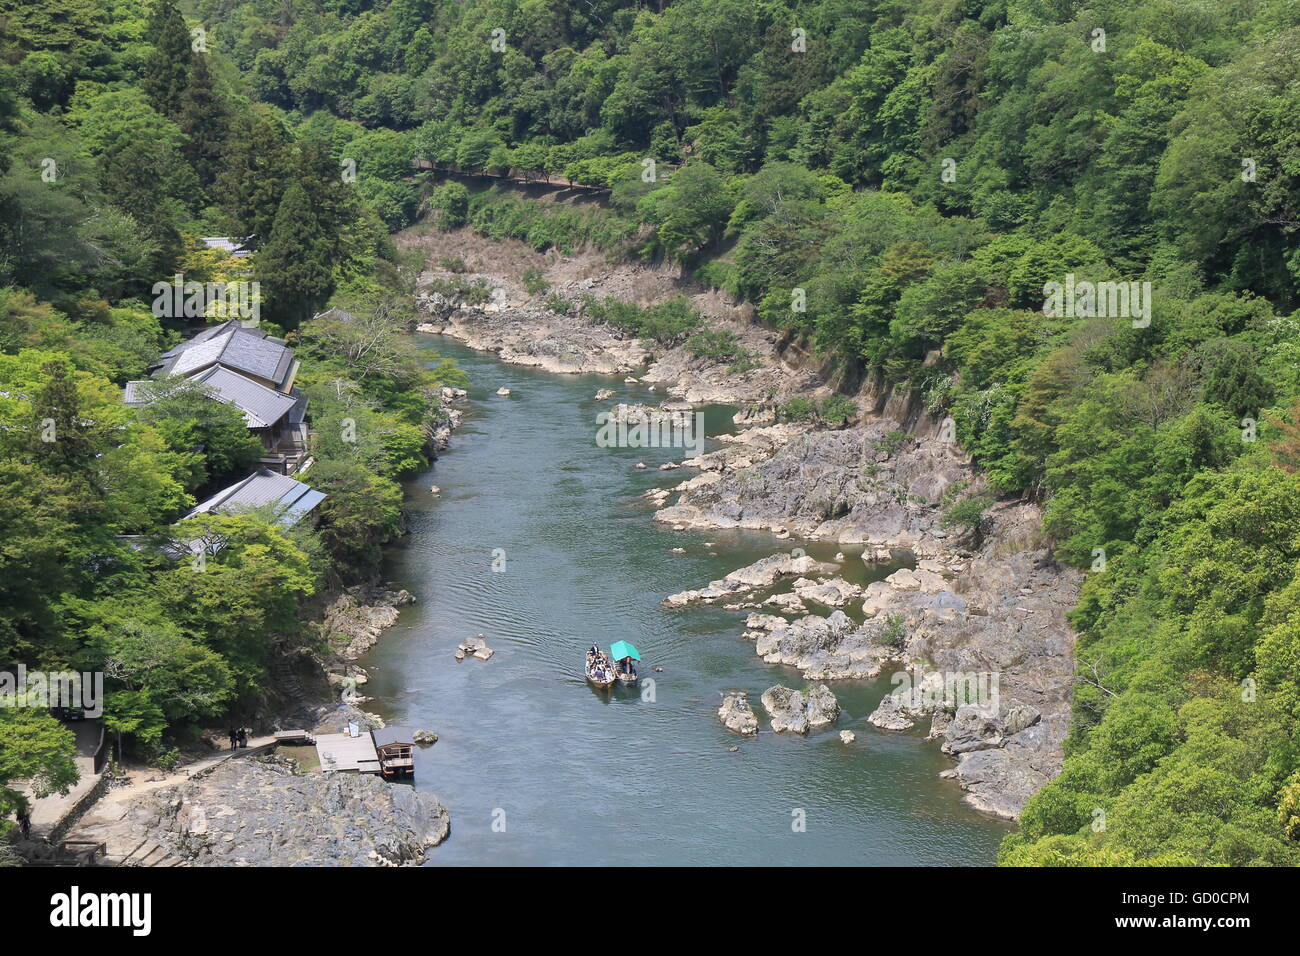 Hozu river cruise and Kyoto mountains in Kyoto Japan. - Stock Image